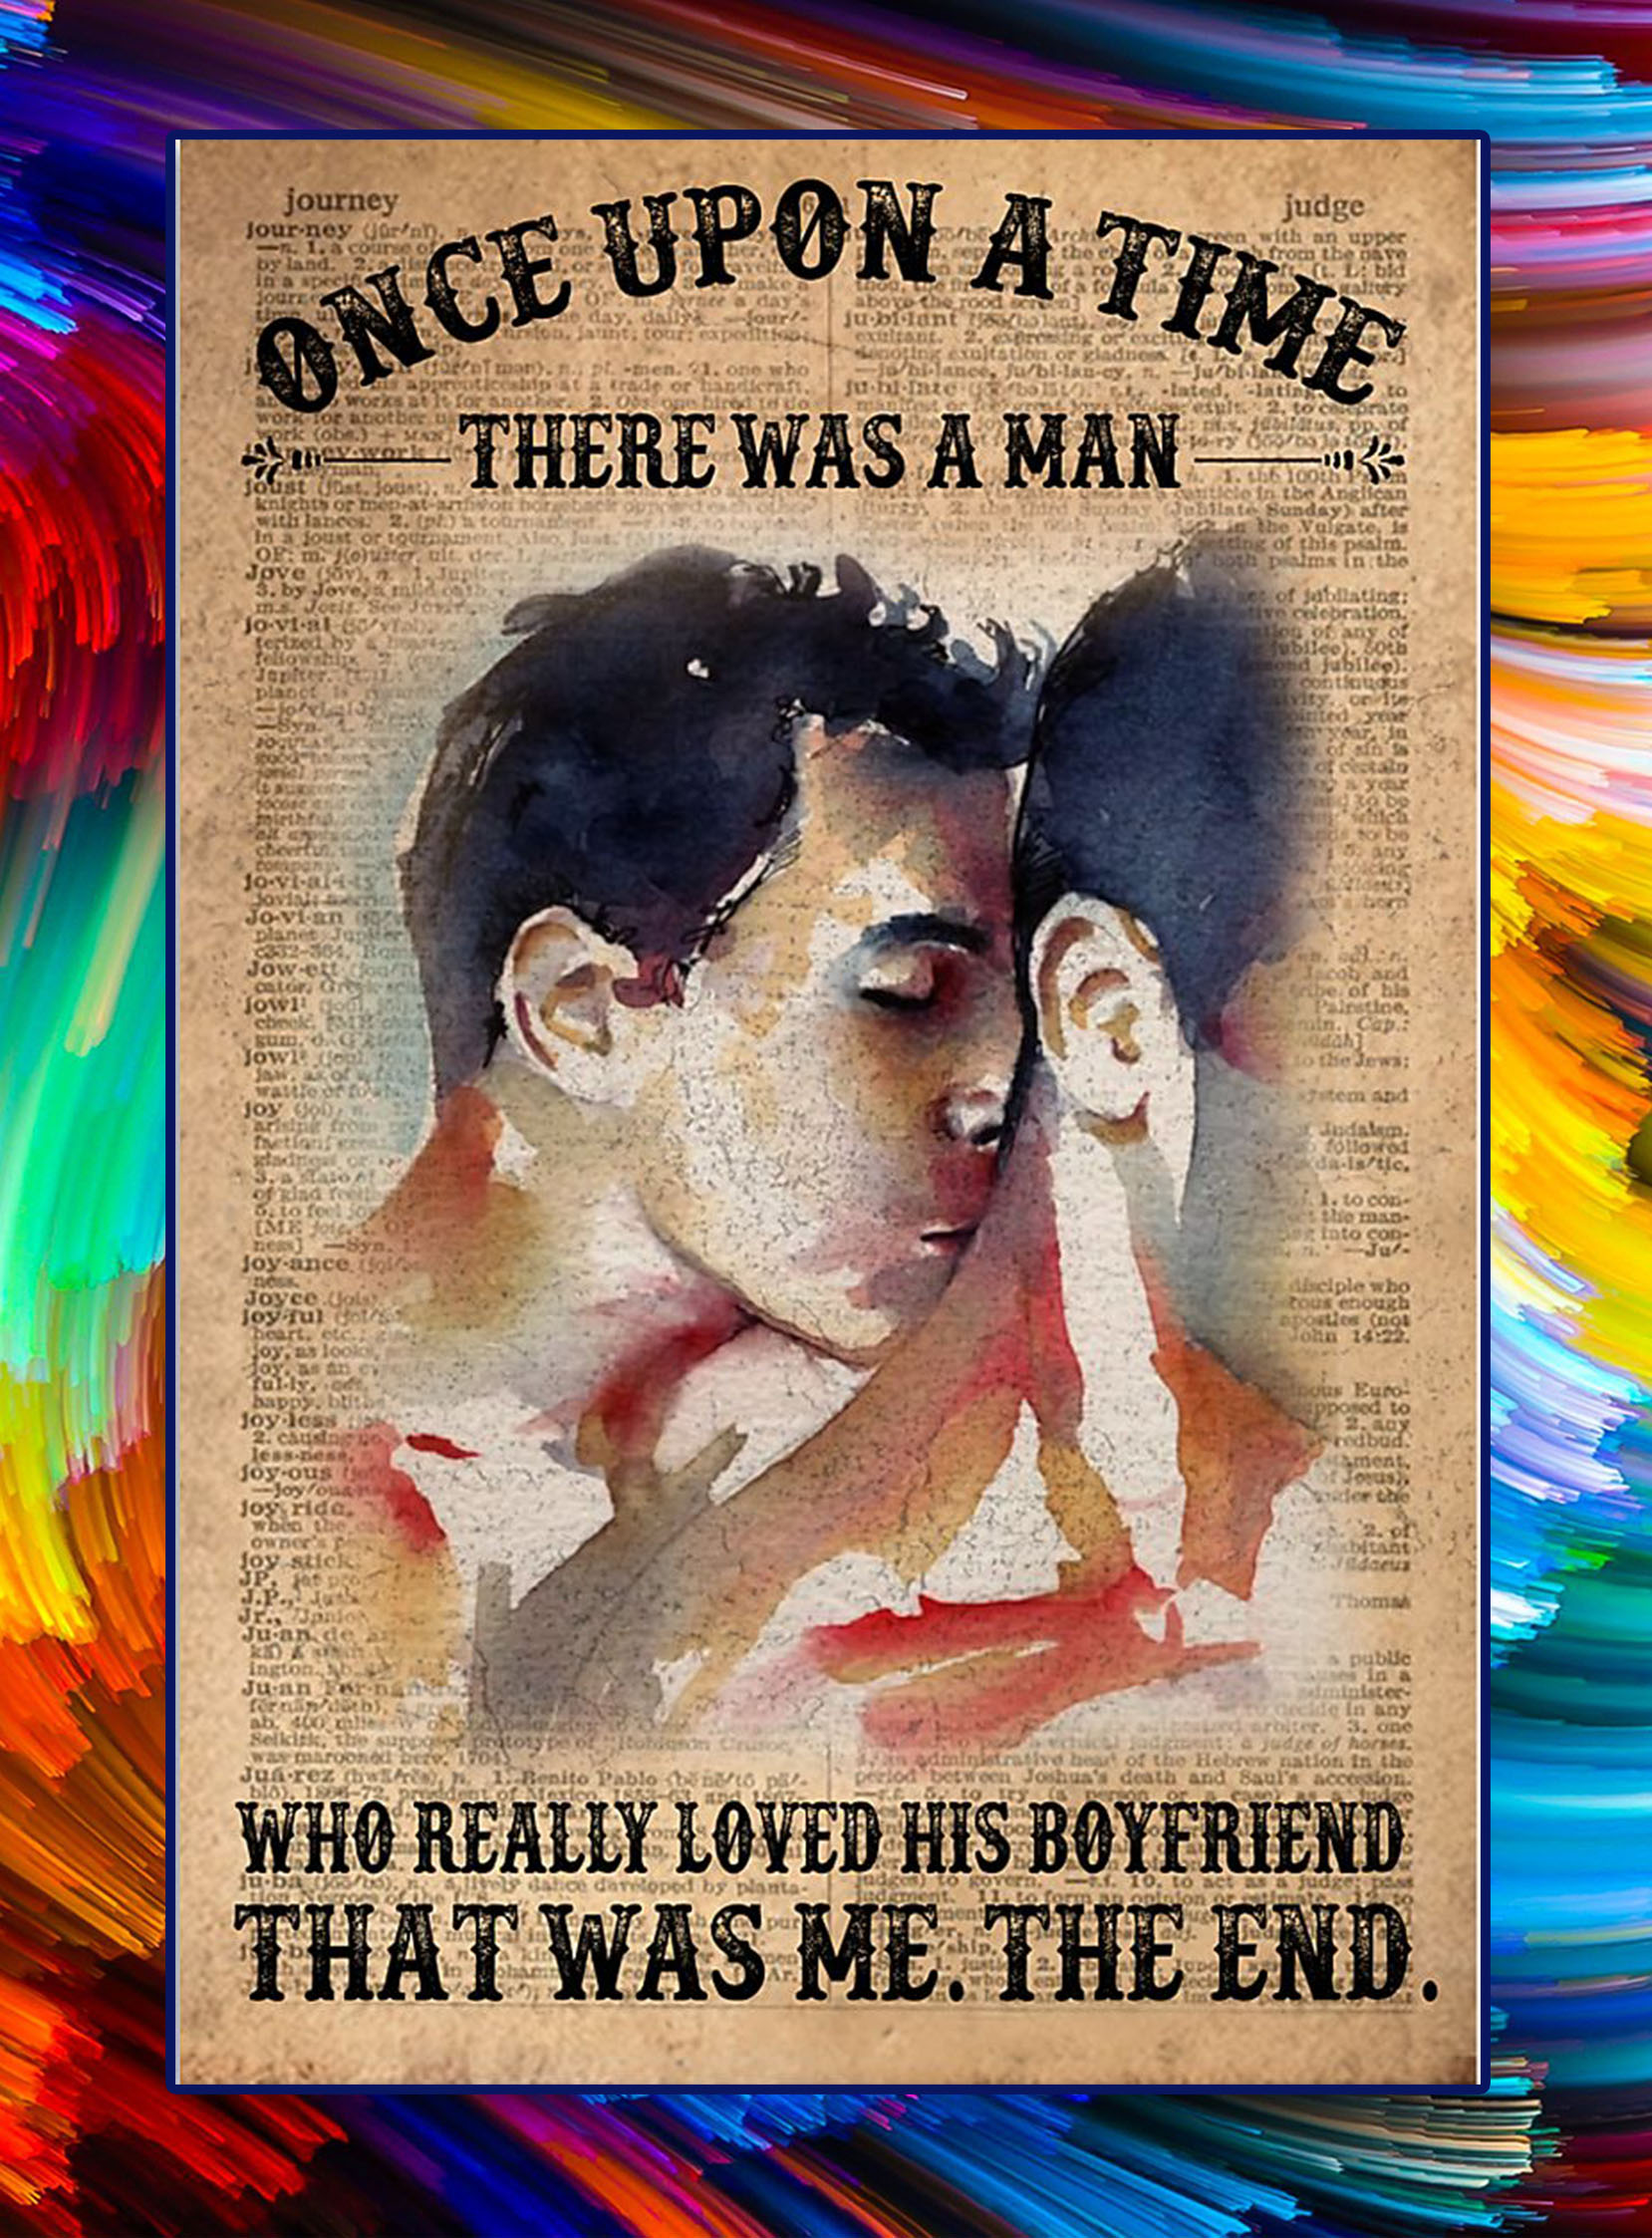 Once upon a time there was a man who really loved his boyfriend poster - A2